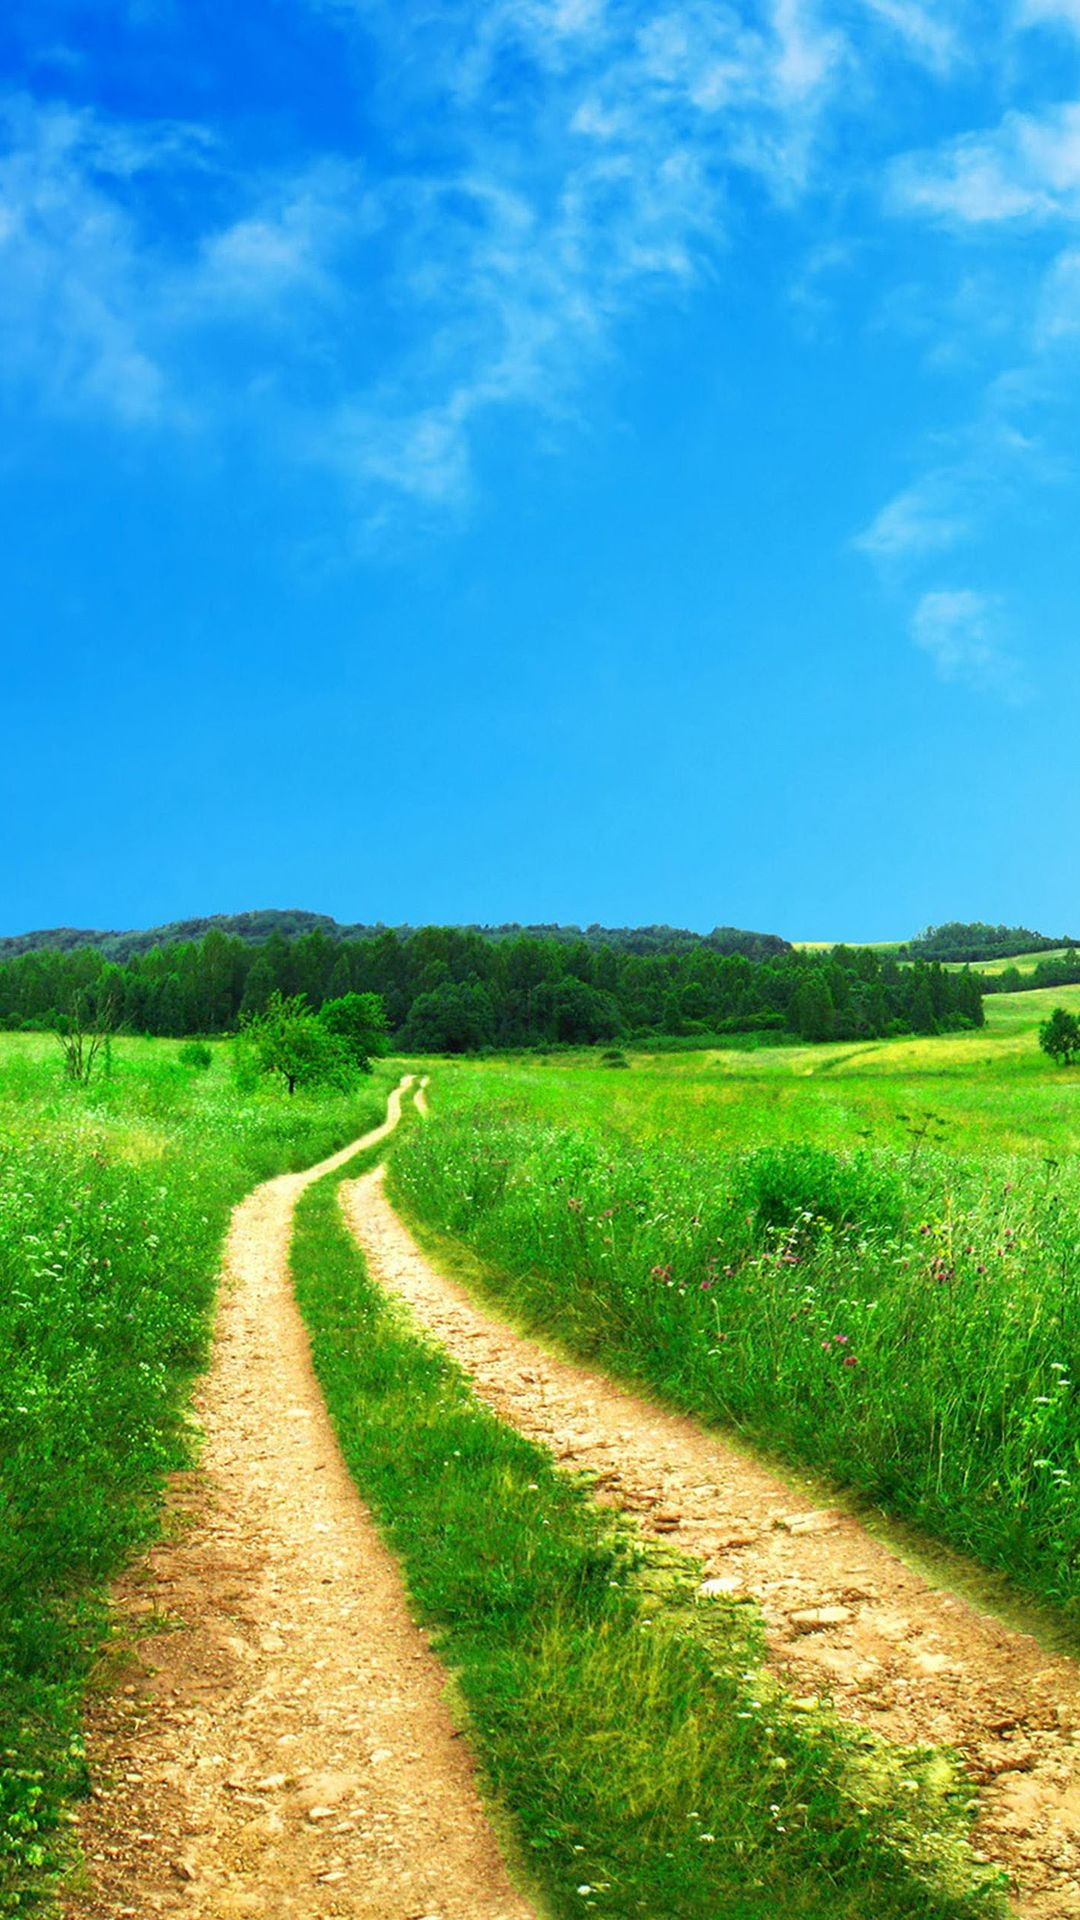 Summer Fields Wallpapers Download at